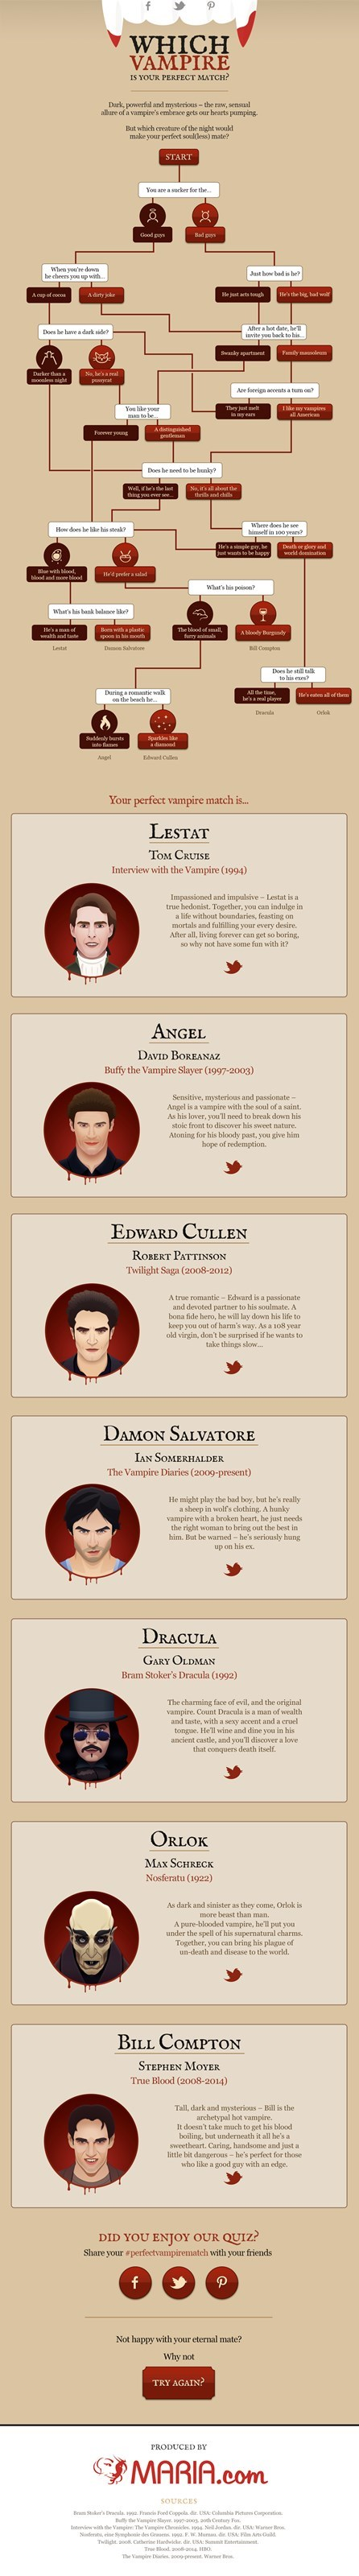 Which Vampire is Your Perfect Match?